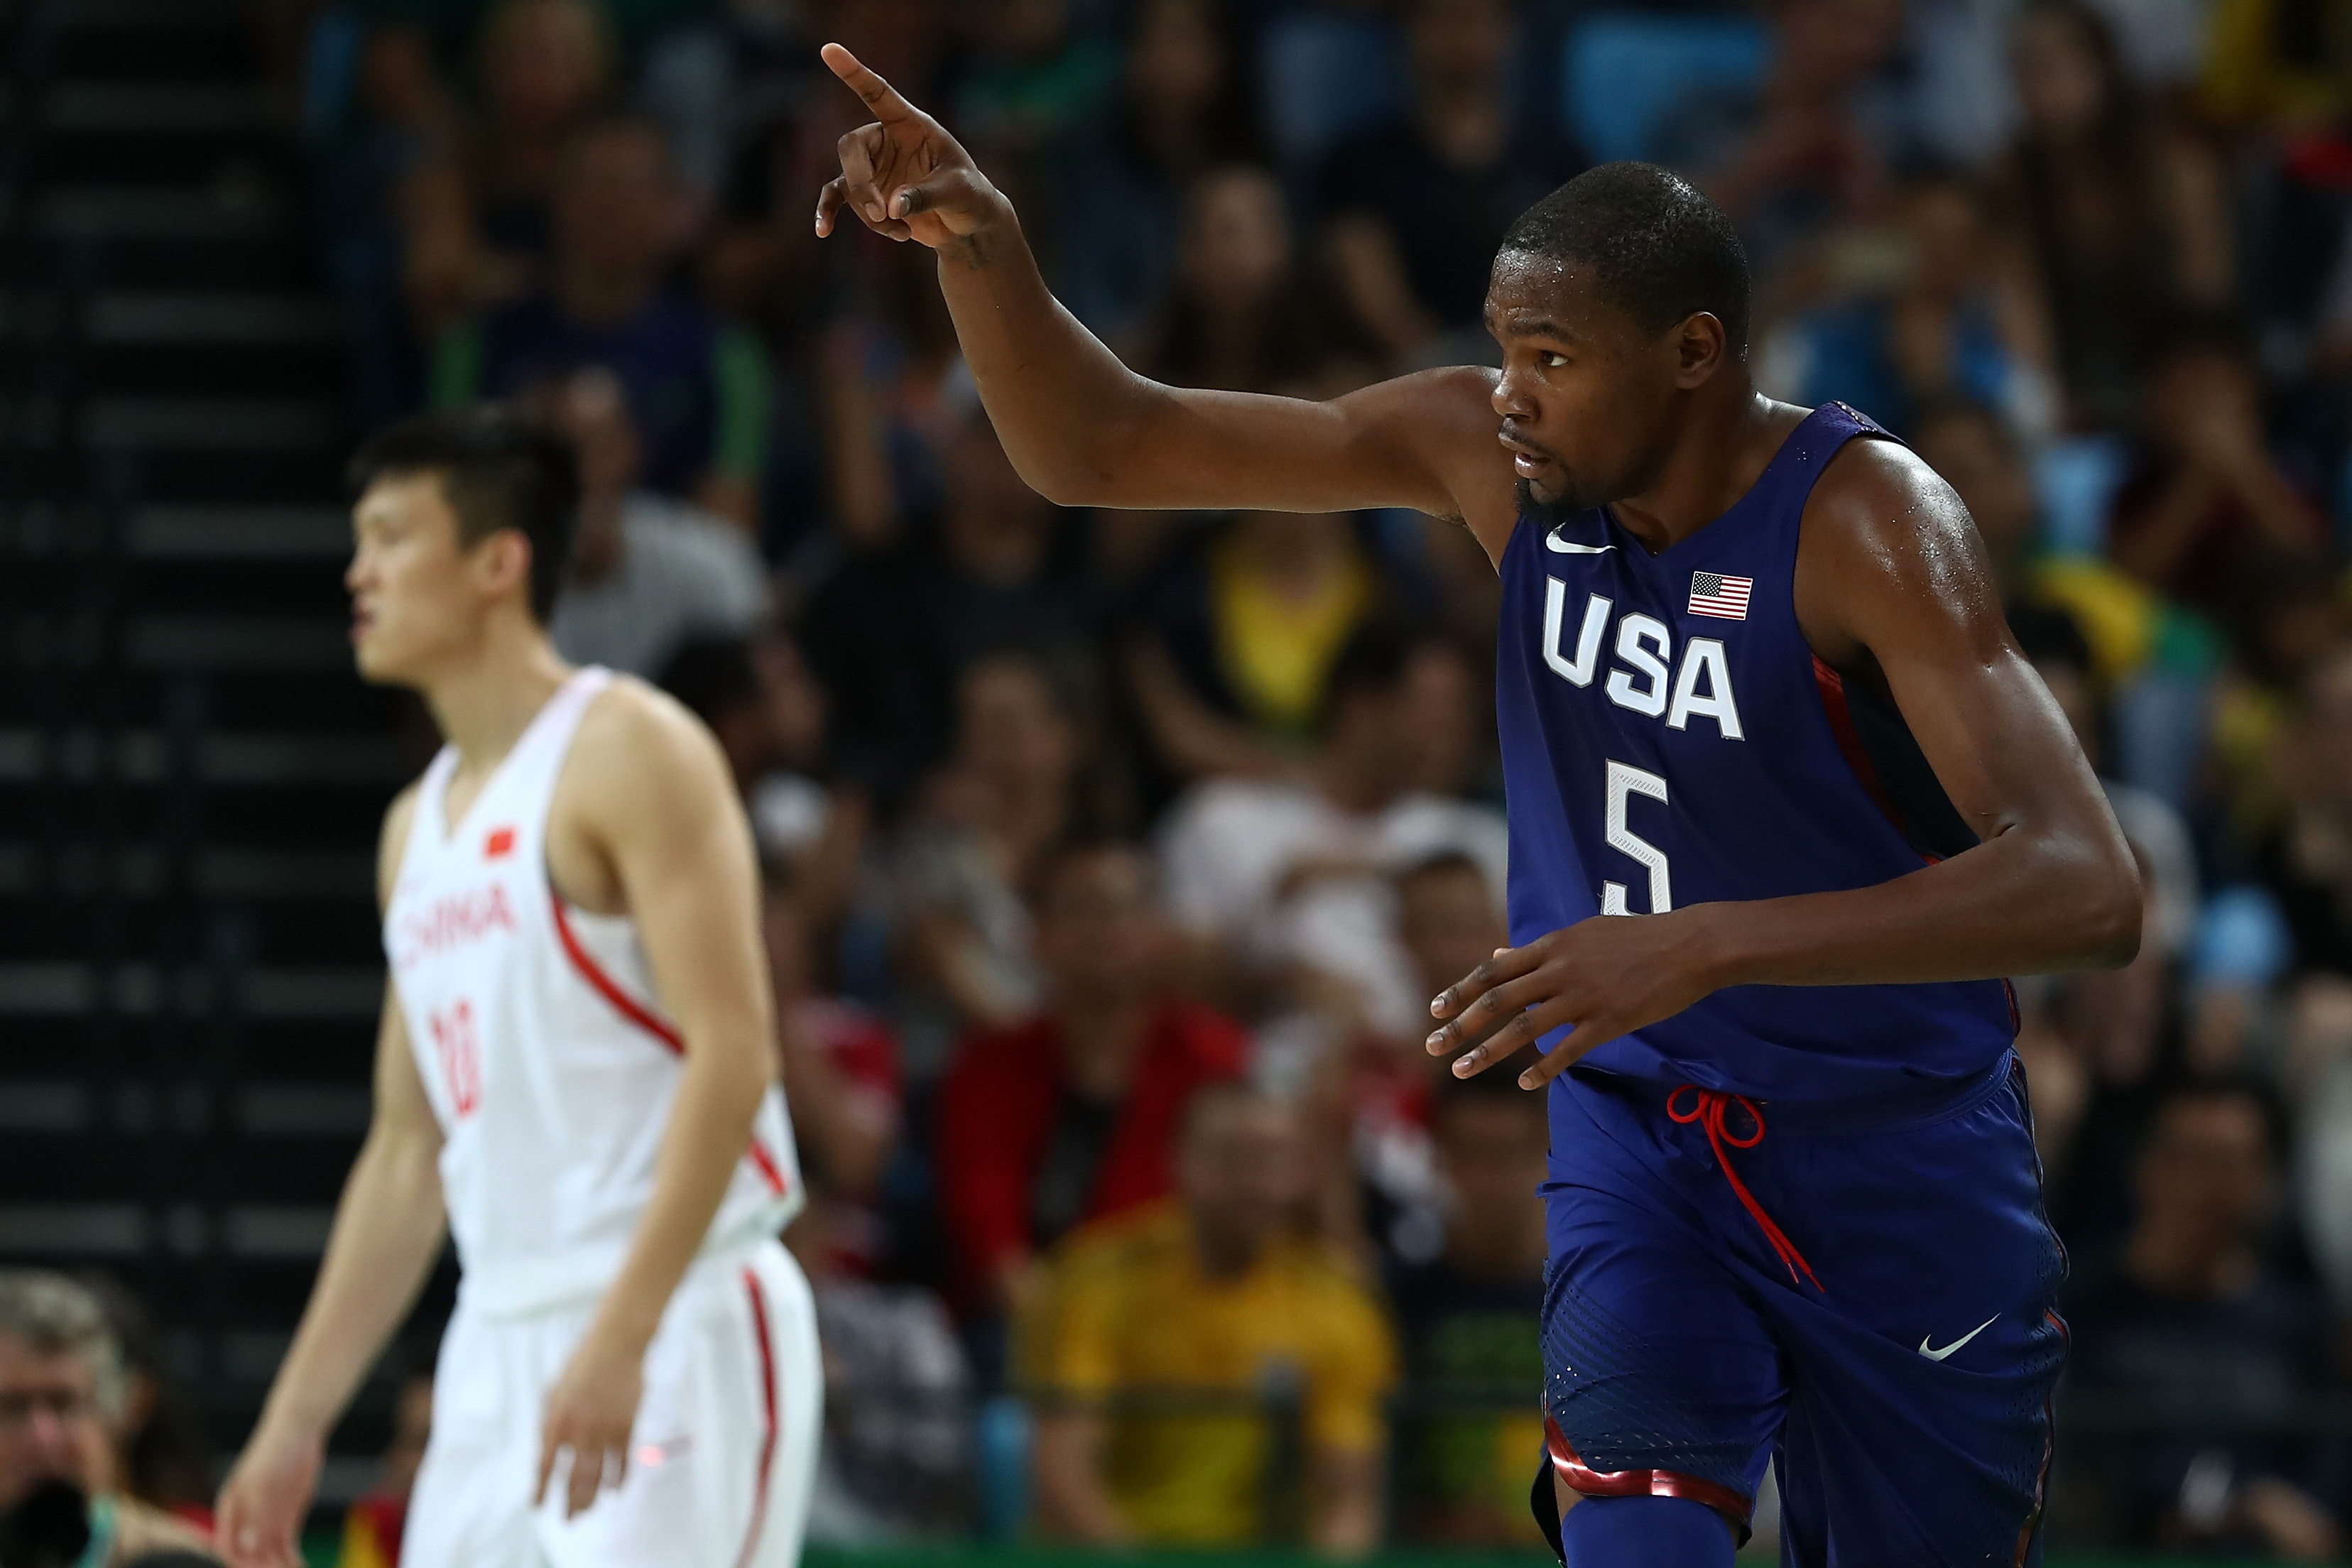 RIO DE JANEIRO, BRAZIL - AUGUST 06:  Kevin Durant #5 of United States reacts after a three point shot against China in the Men's Preliminary Round Group A match on Day 1 of the Rio 2016 Olympic Games at Carioca Arena 1 on August 6, 2016 in Rio de Janeiro,